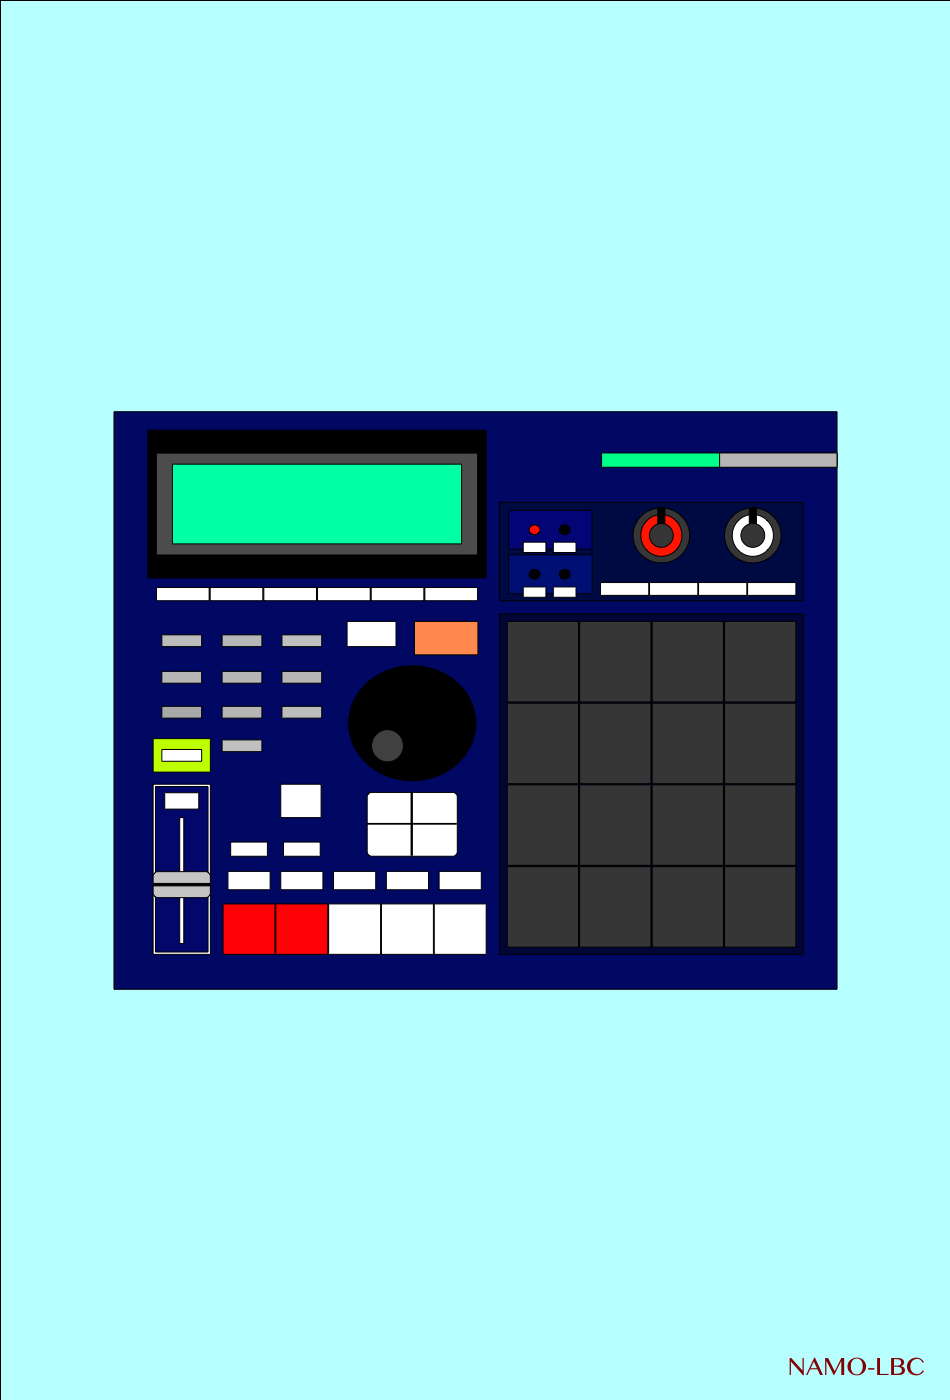 MPC 2000XL BLUE SKIN